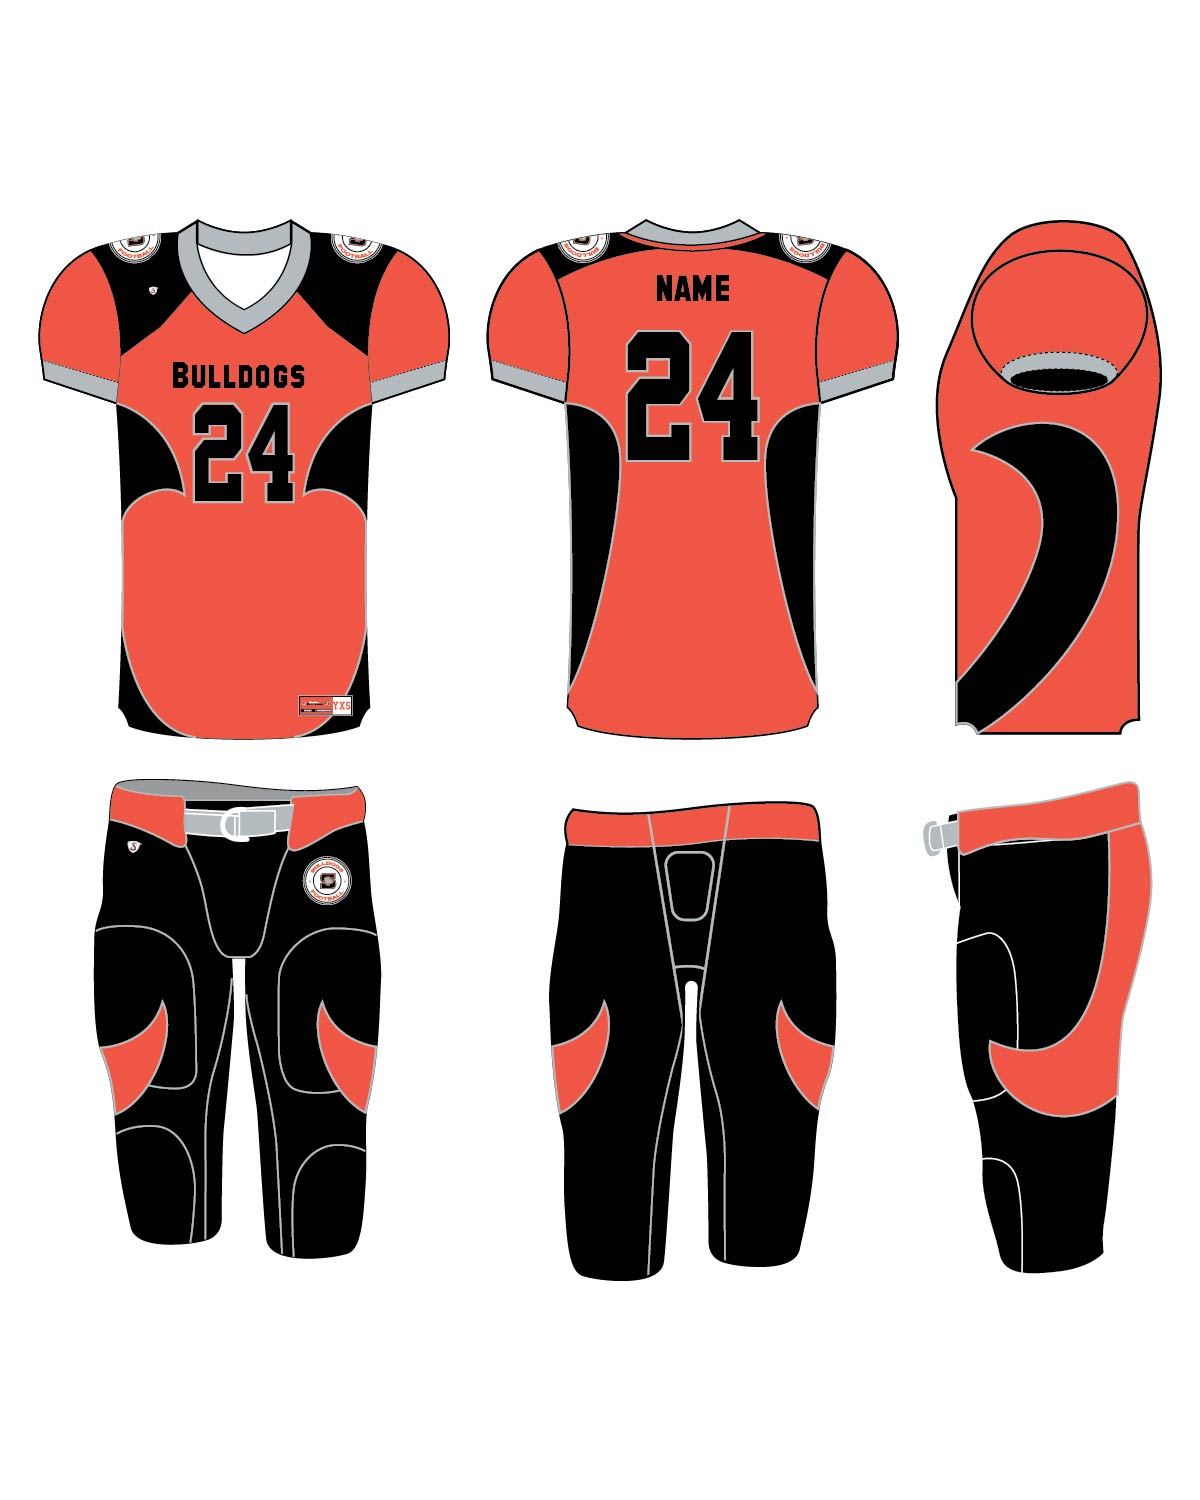 Custom Sublimated Football Uniform - Bulldogs 1